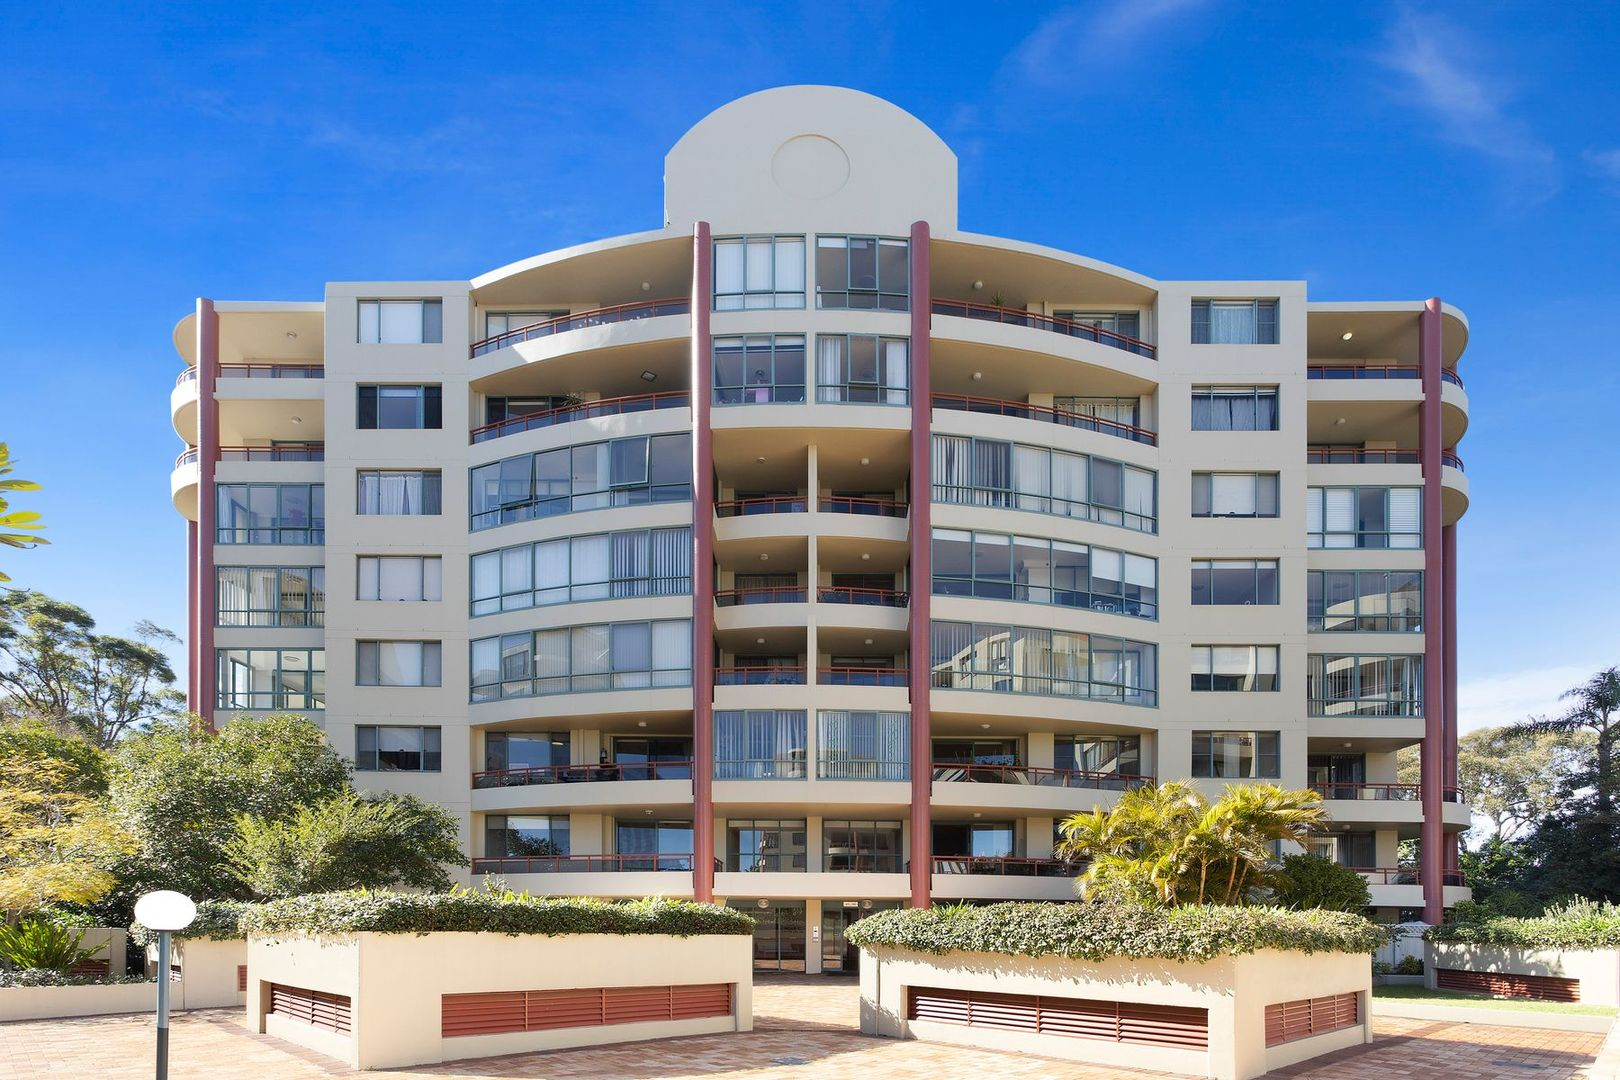 92/1-15 Fontenoy Road, Macquarie Park NSW 2113, Image 0